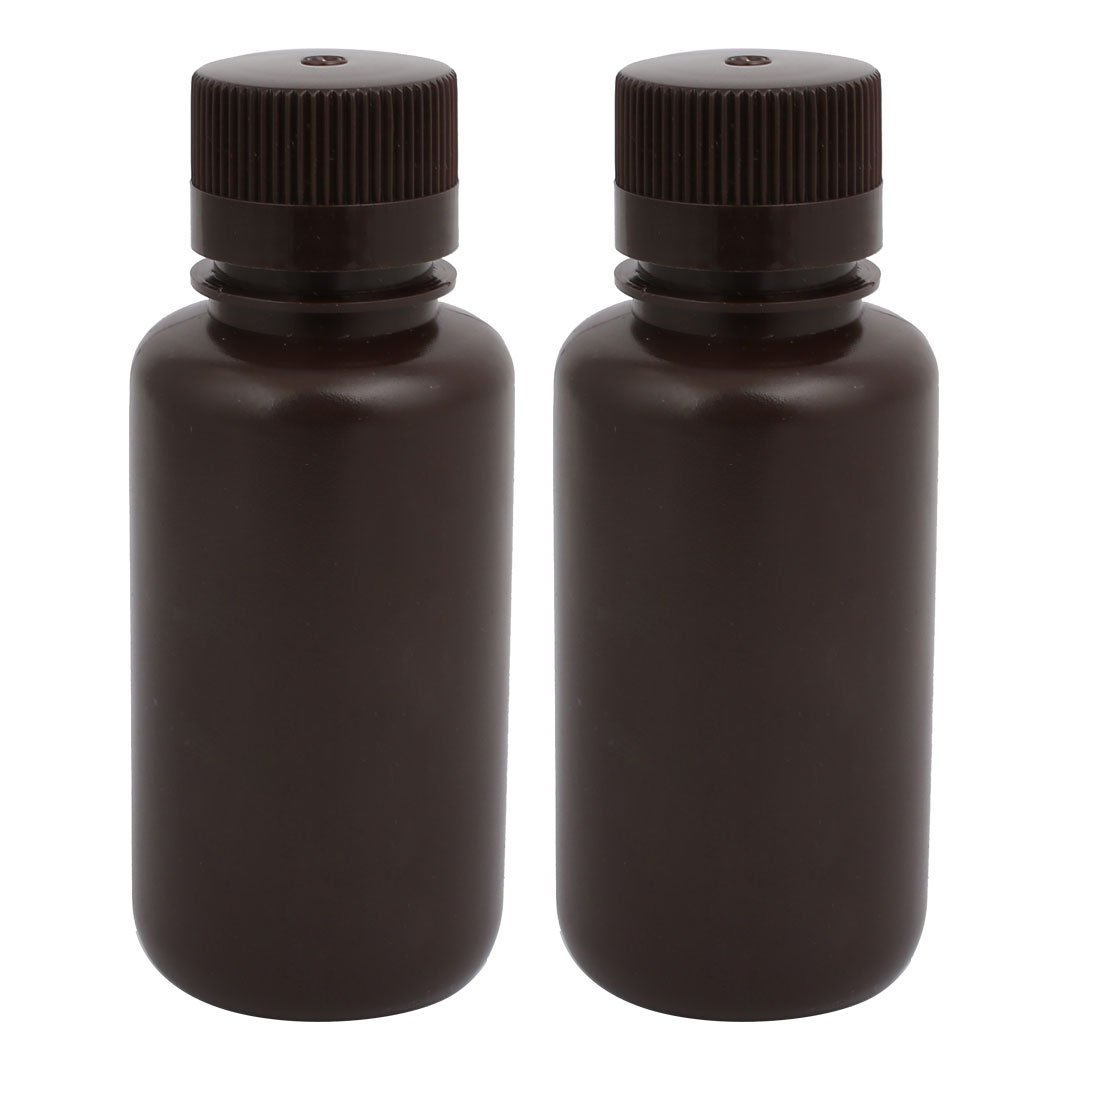 uxcell 2pcs 62mm Diameter 145mm Height 250ml Plastic Round Shaped Bottle Brown